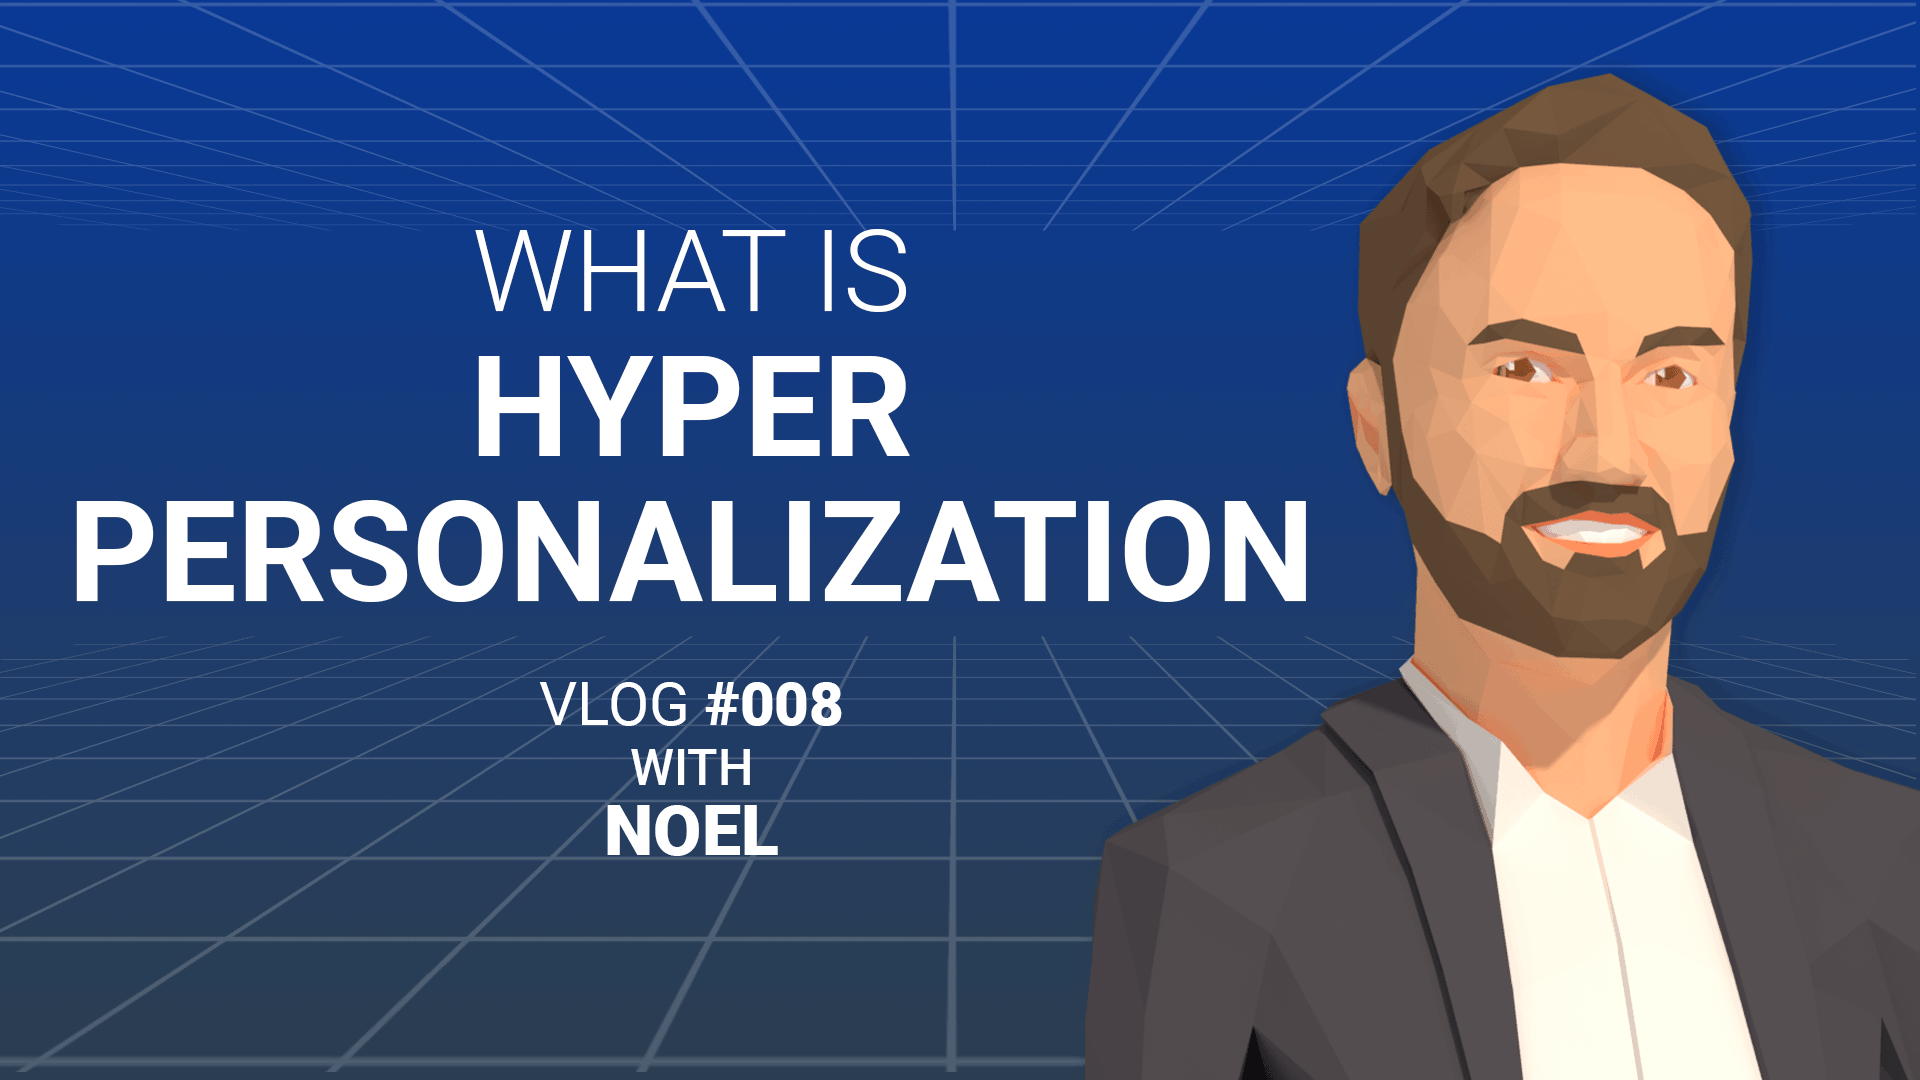 What is Website Hyper-Personalization?